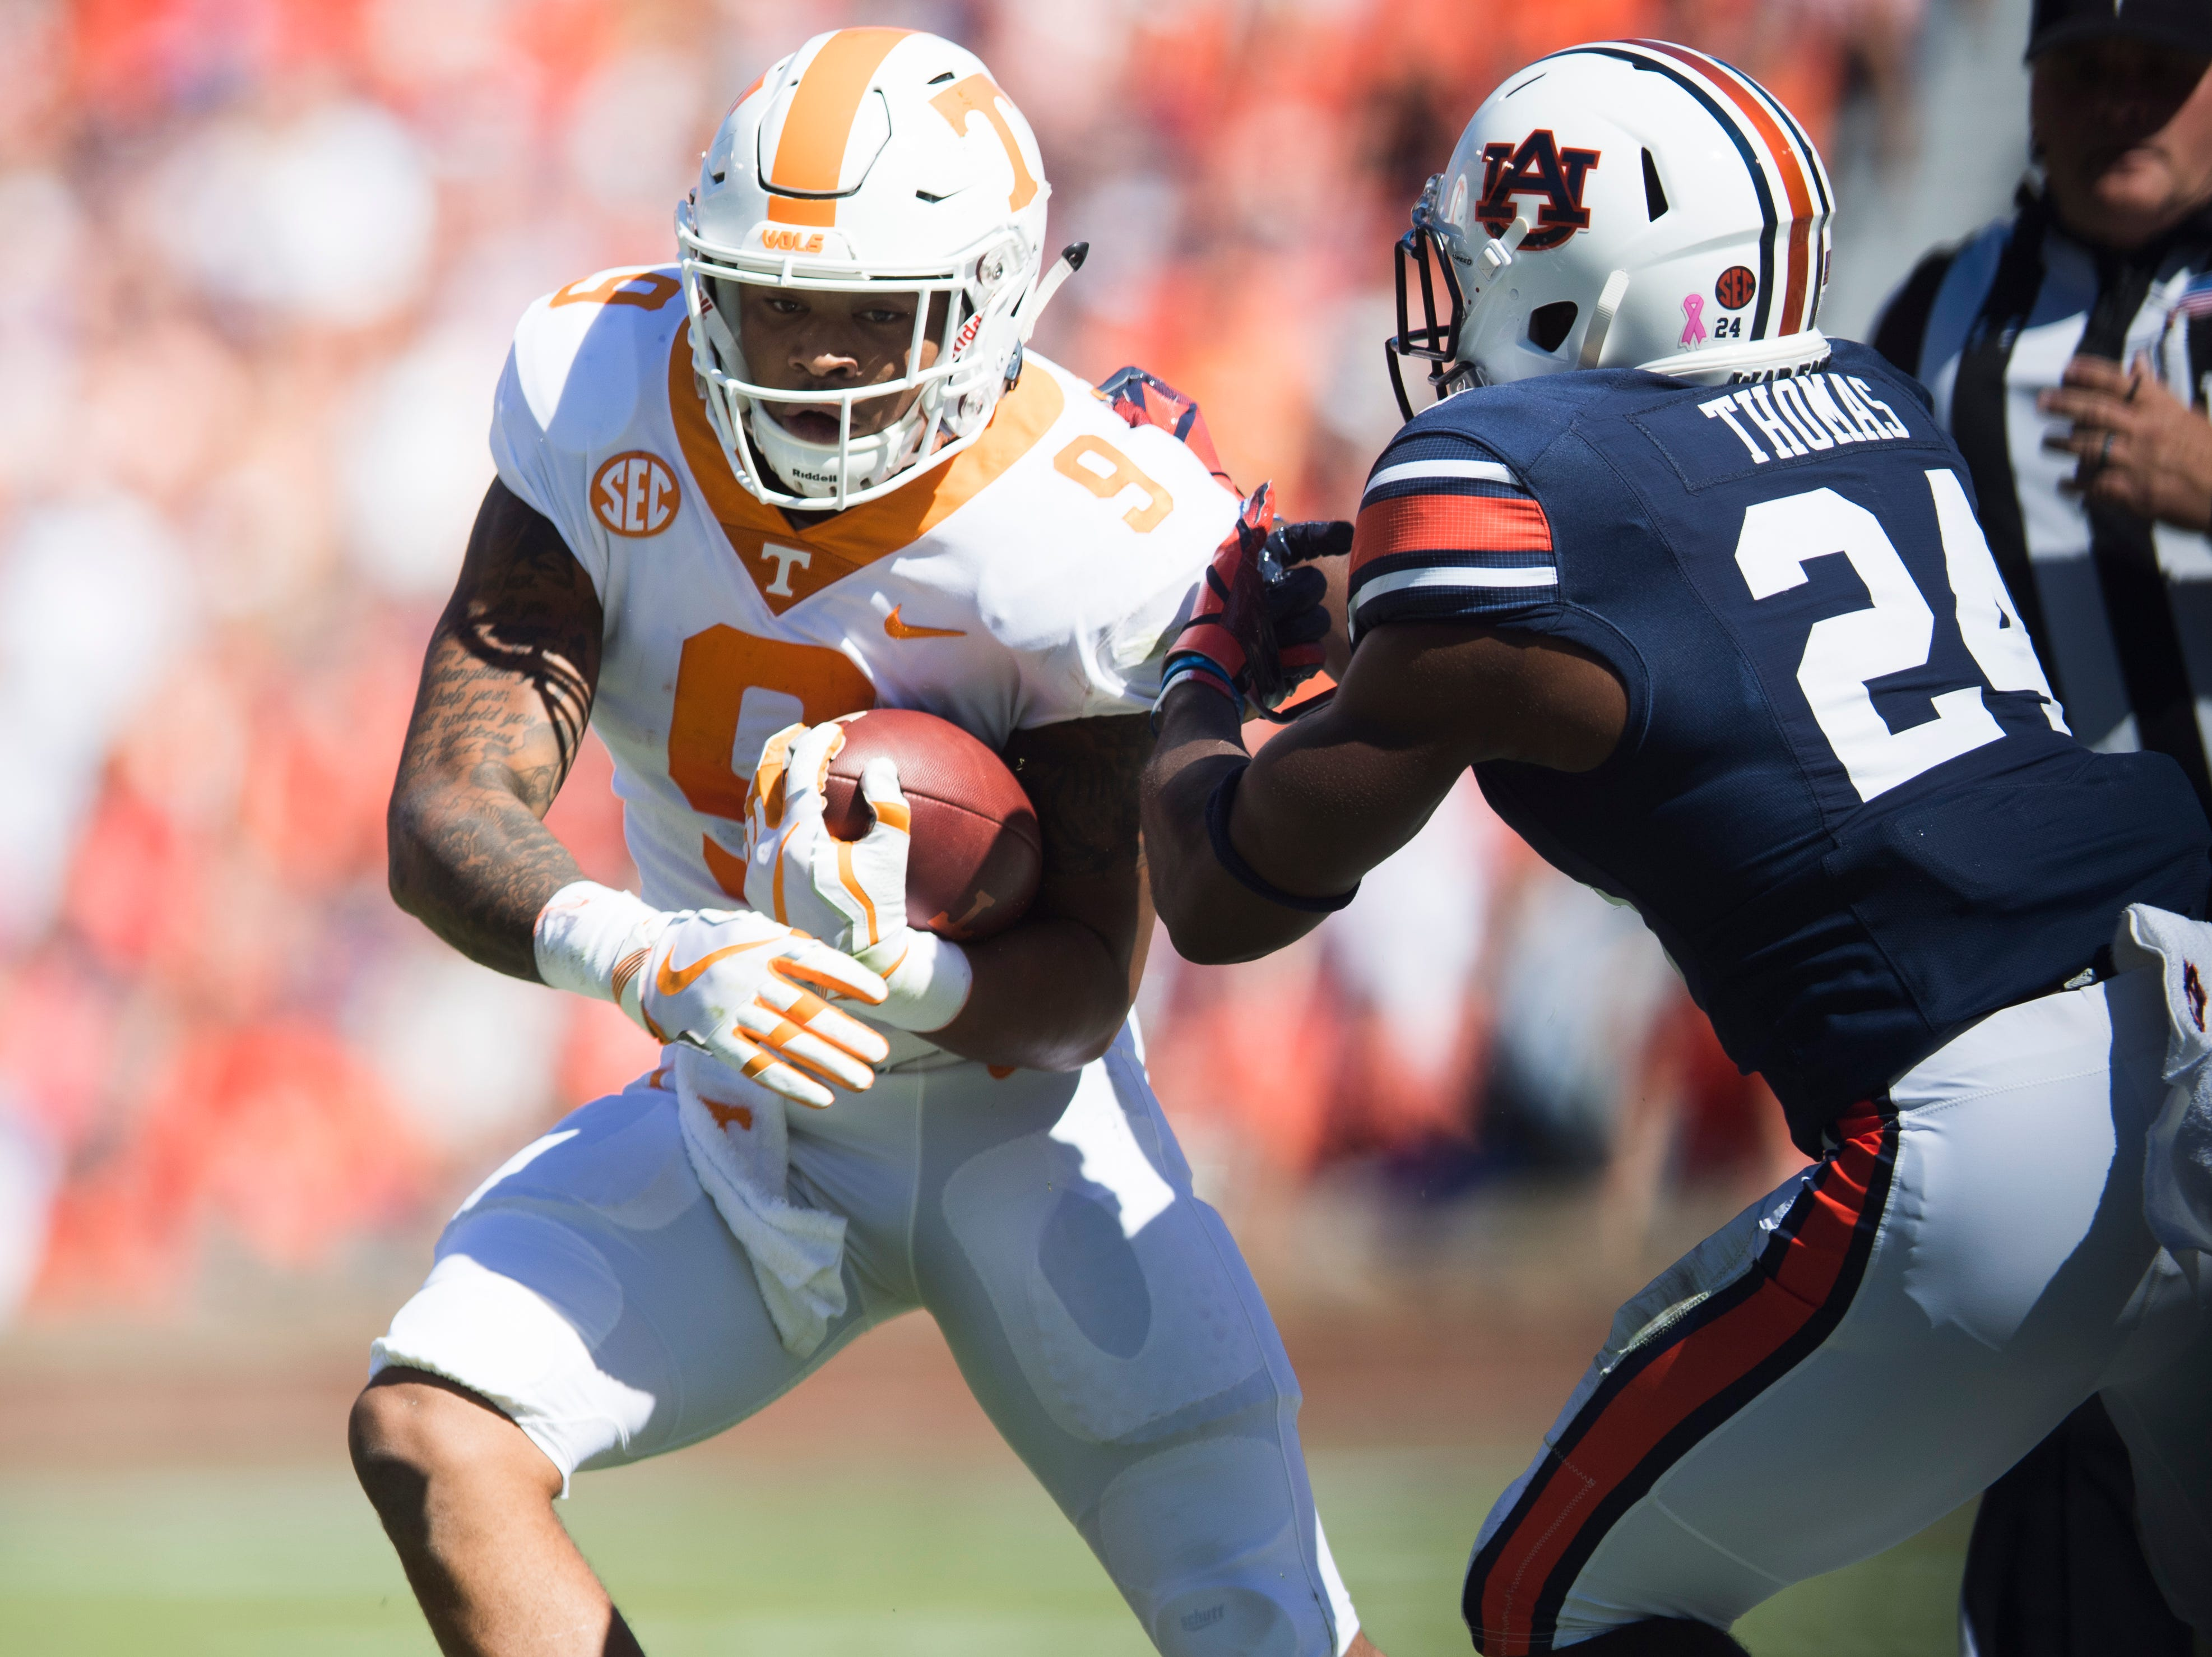 Auburn defensive back Daniel Thomas (24) tackles Tennessee running back Tim Jordan (9) during a game between Tennessee and Auburn at Jordan-Hare Stadium in Auburn, Alabama on Saturday, October 13, 2018.